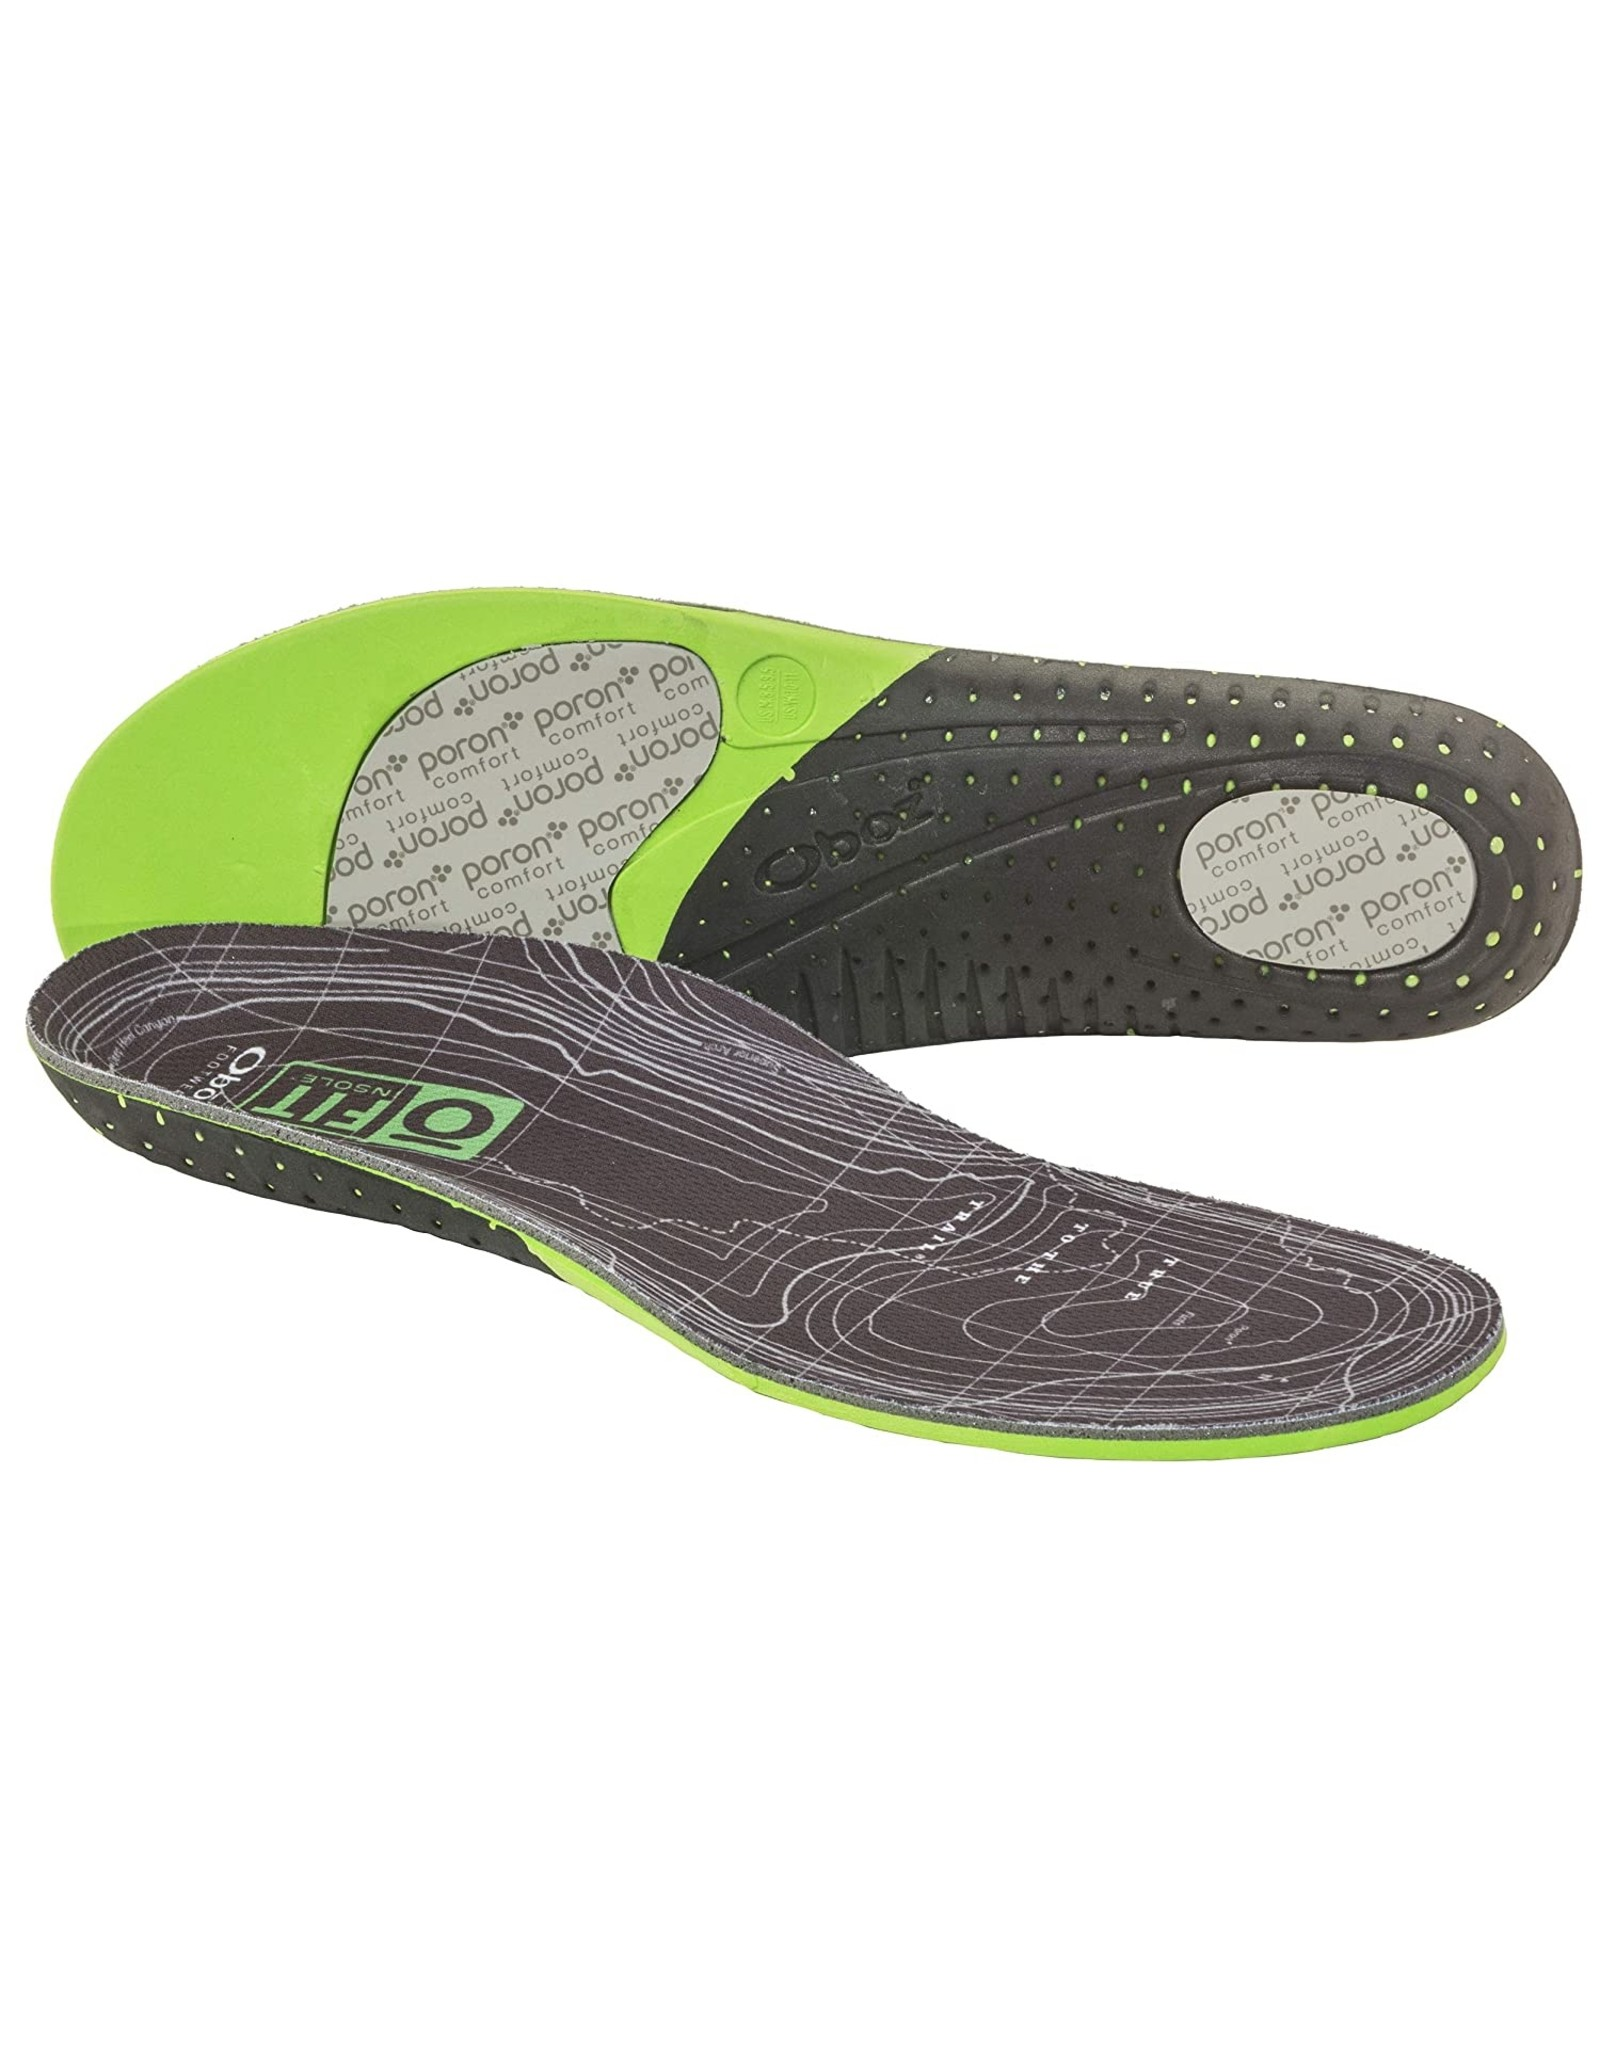 Oboz O FIT Insole Plus Thermal Medium Arch Unisex Green XS